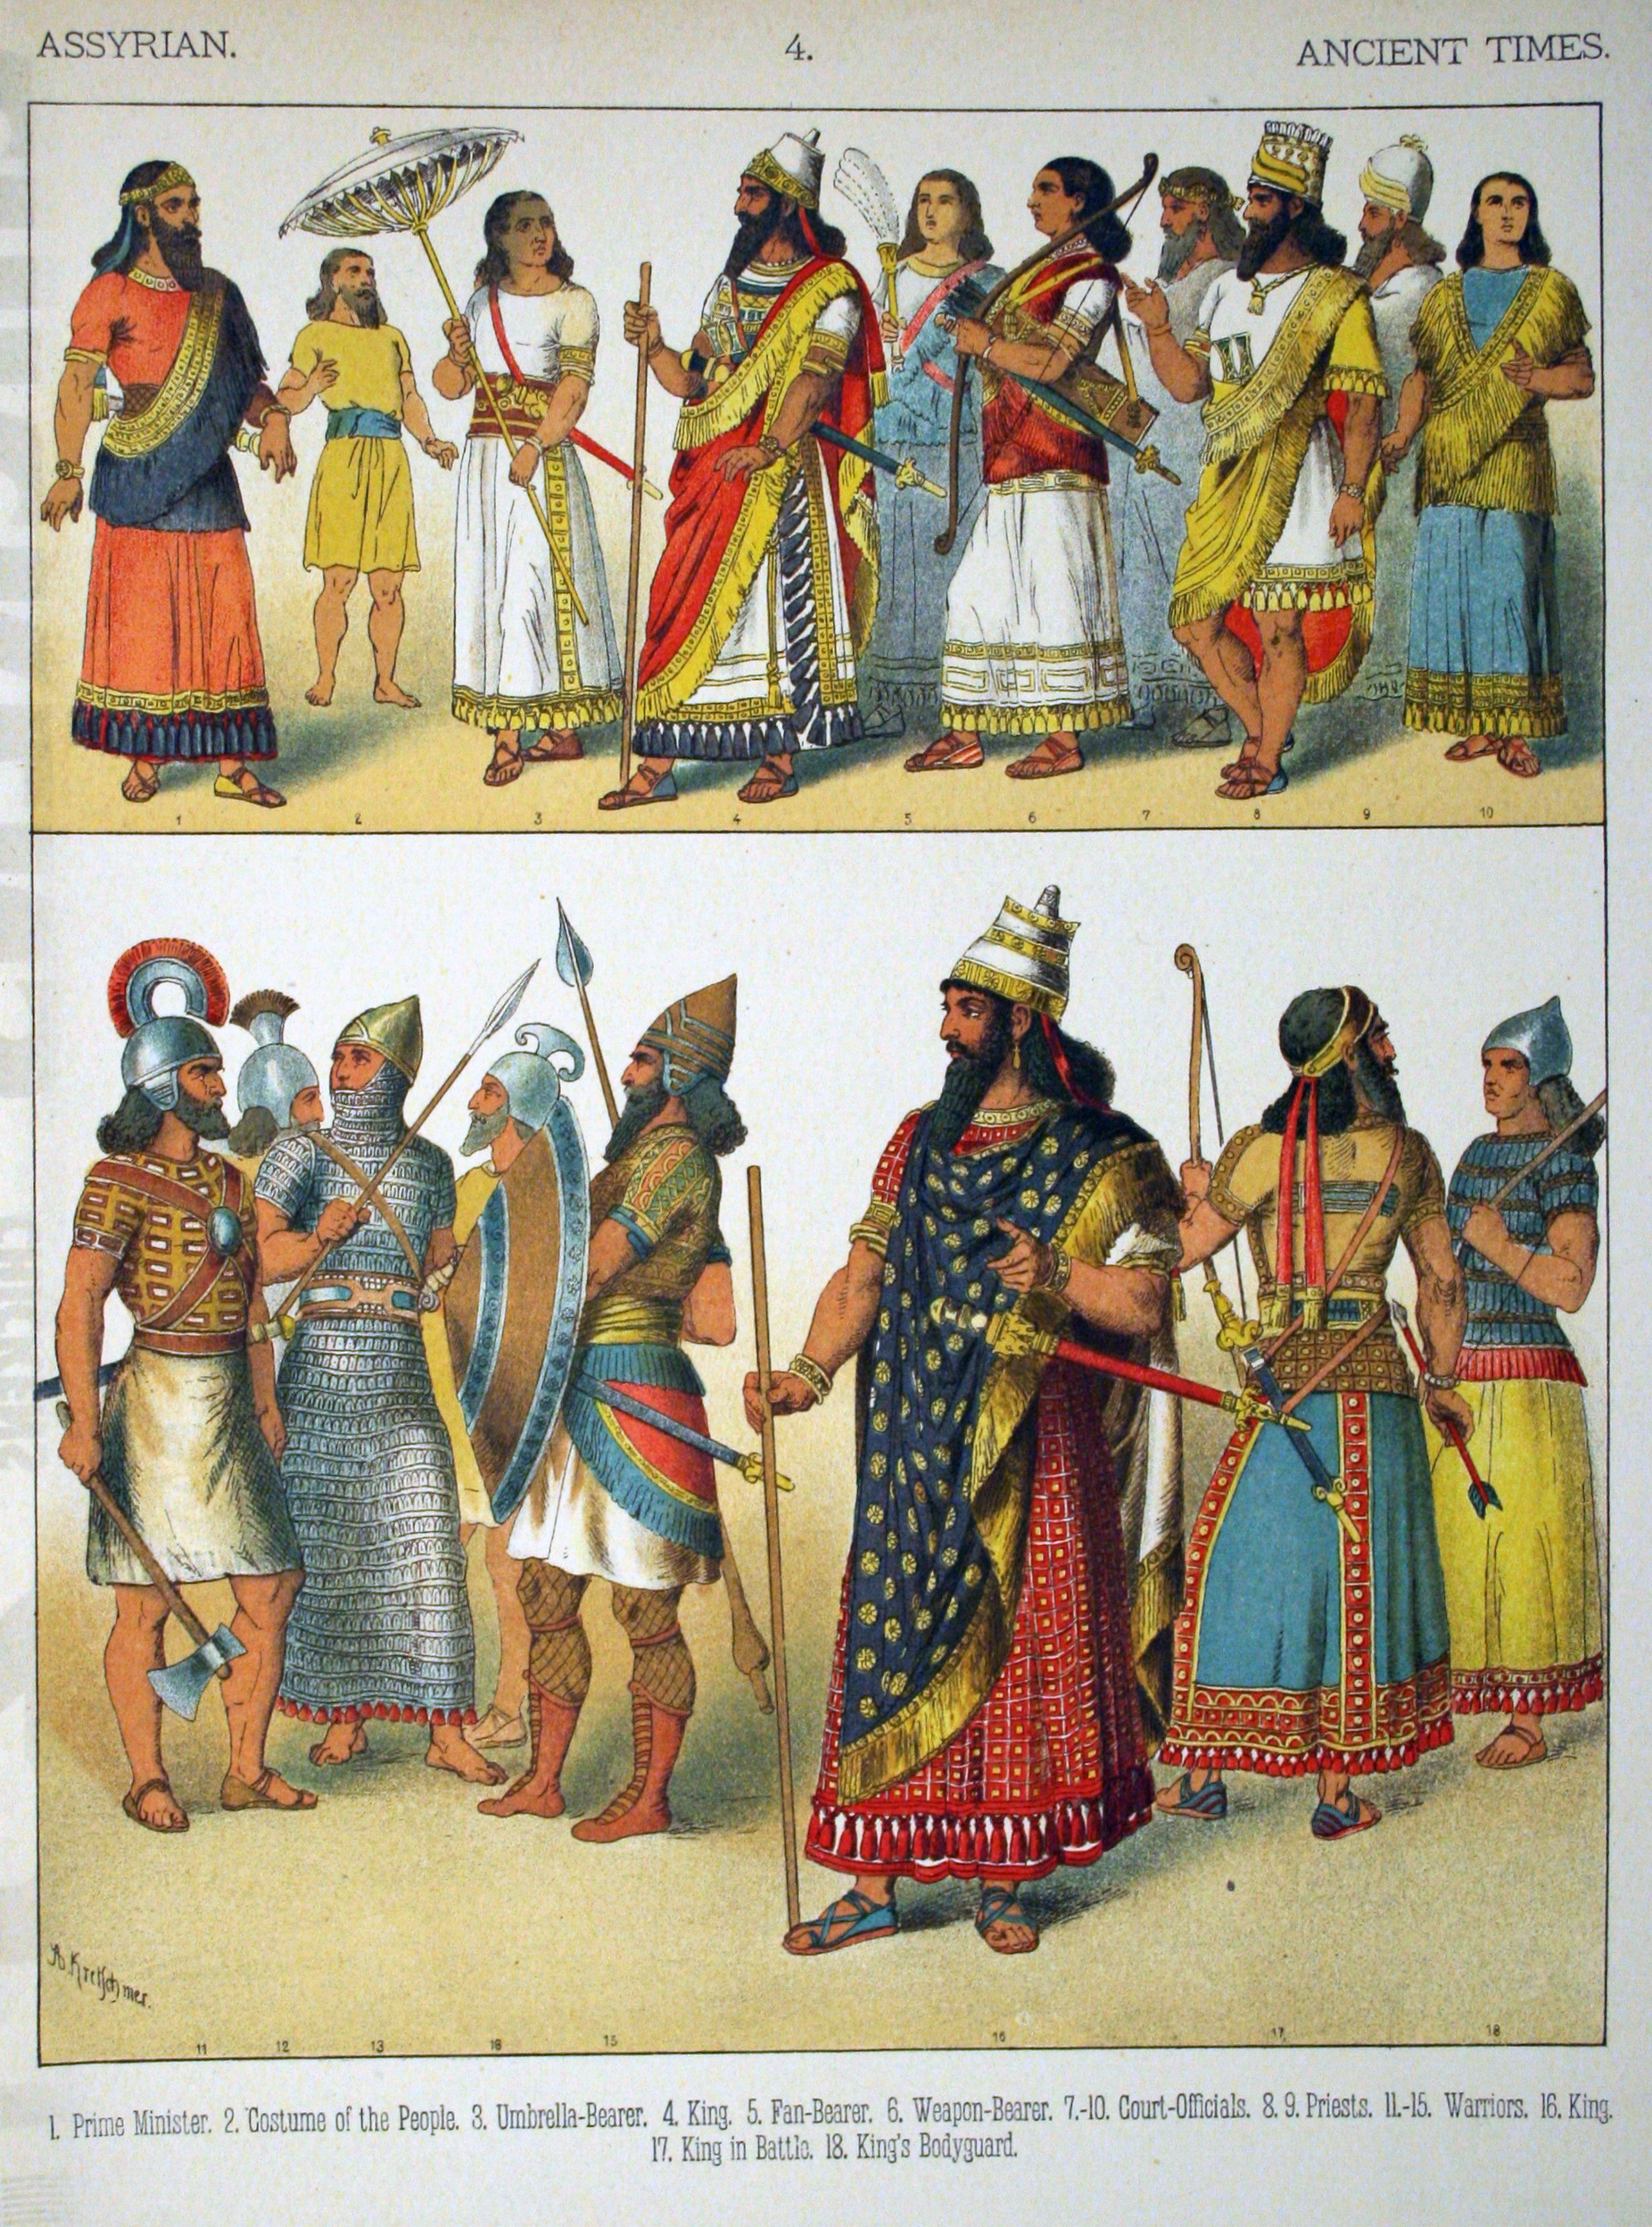 http://upload.wikimedia.org/wikipedia/commons/c/c6/Ancient_Times%2C_Assyrian._-_004_-_Costumes_of_All_Nations_%281882%29.JPG